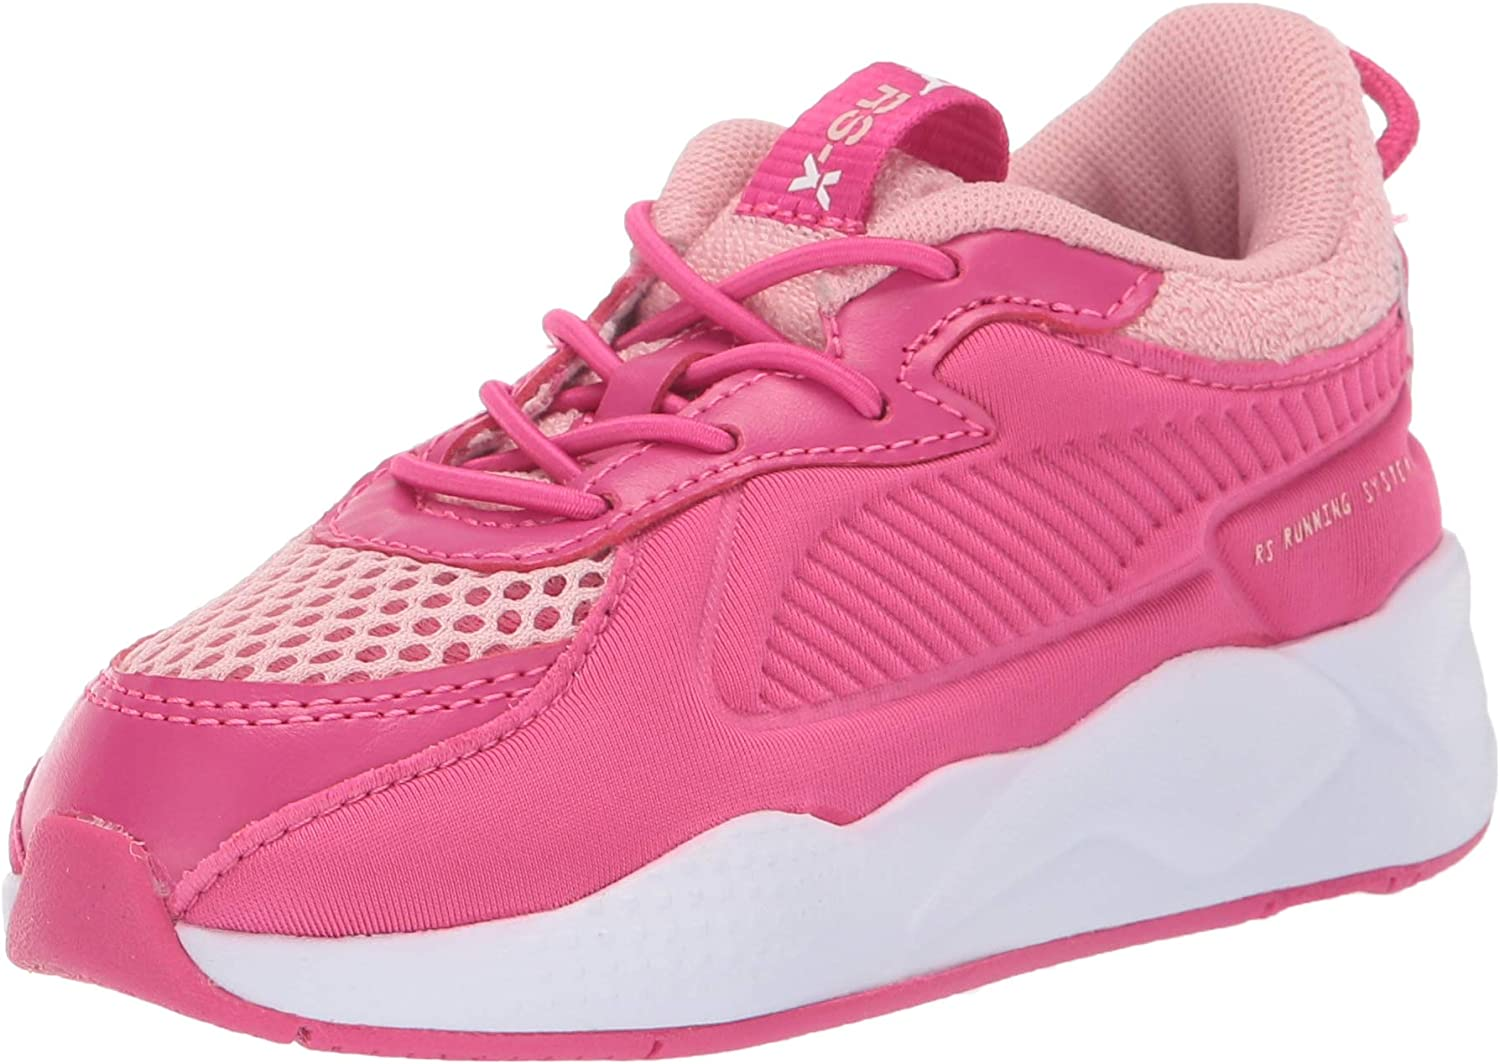 PUMA Unisex-Child Online limited Manufacturer regenerated product product Rs-x Sneaker on Slip